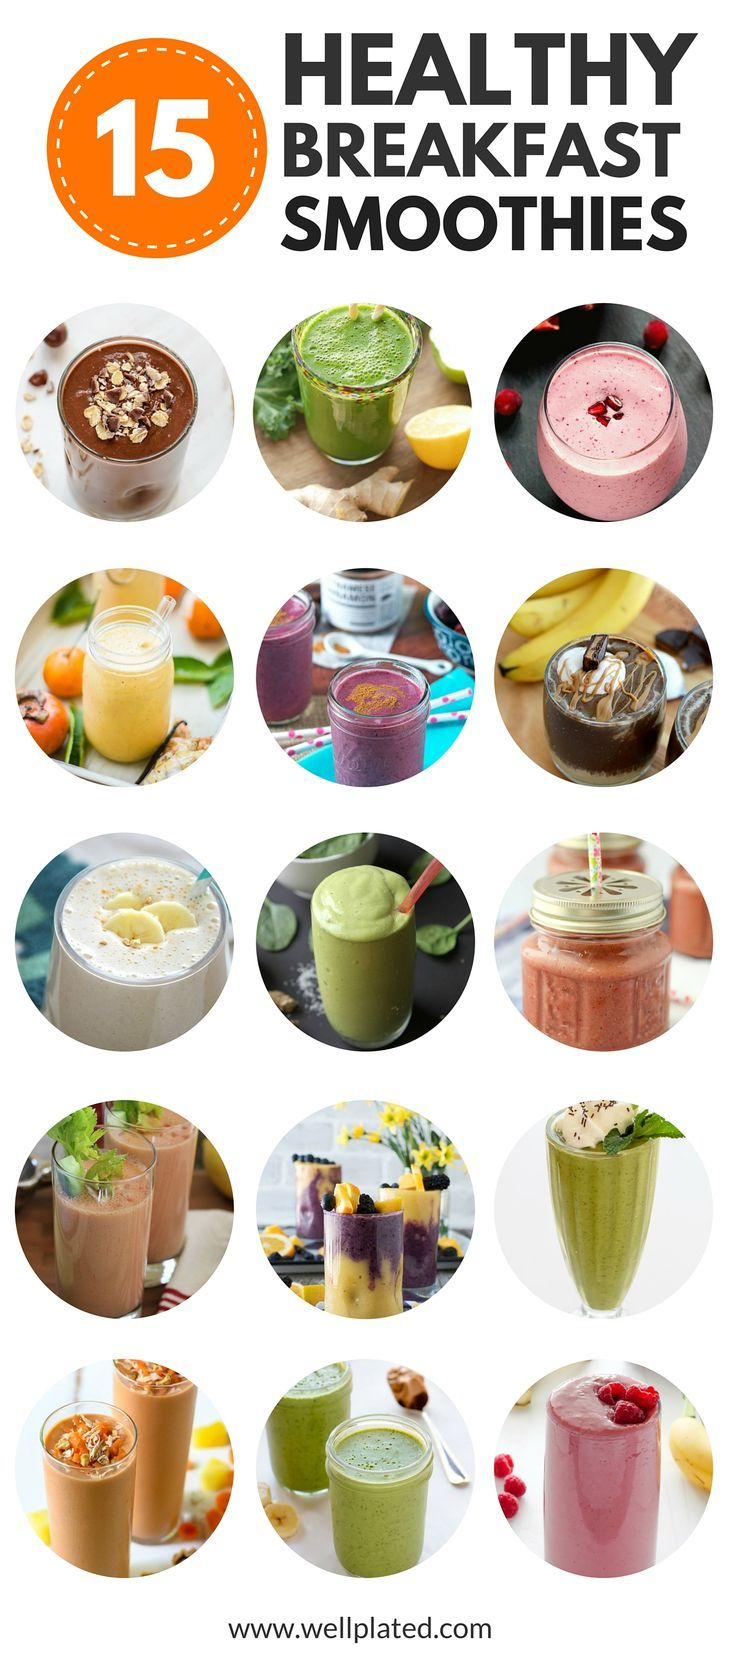 Stay Healthy And Lose Weight With These Recipes For Healthy Breakfast  Smoothies That Are Packed With